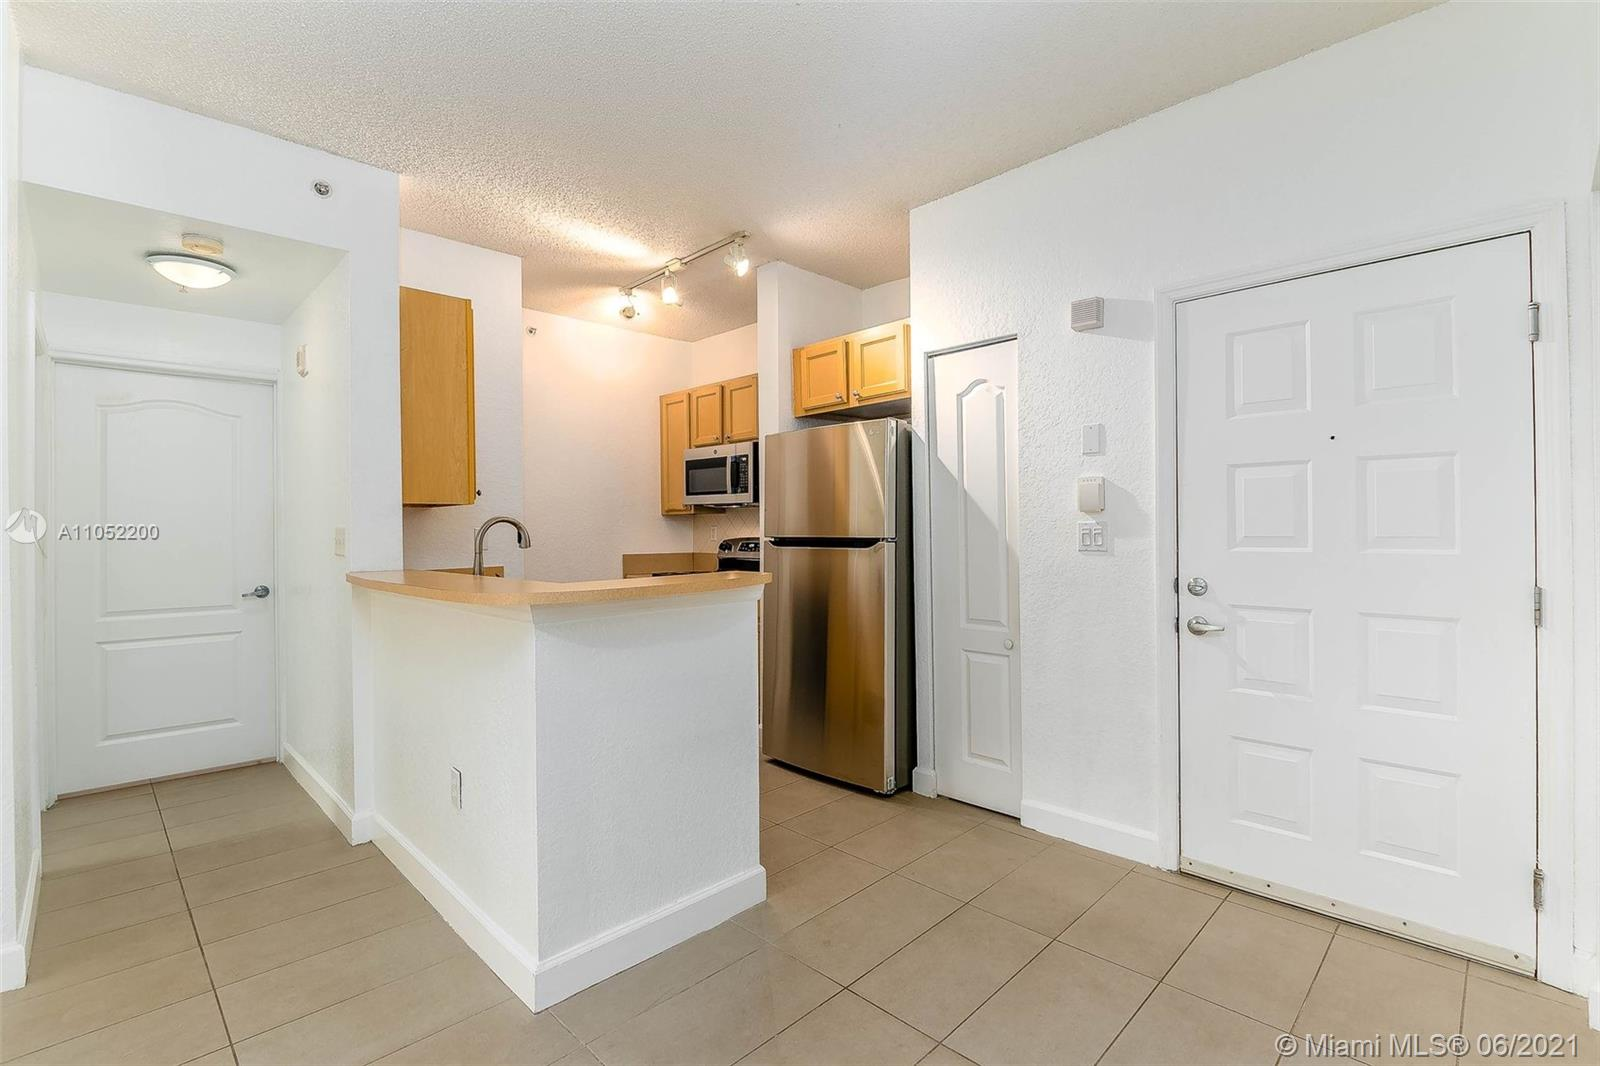 6001 SW 70th St #321 For Sale A11052200, FL